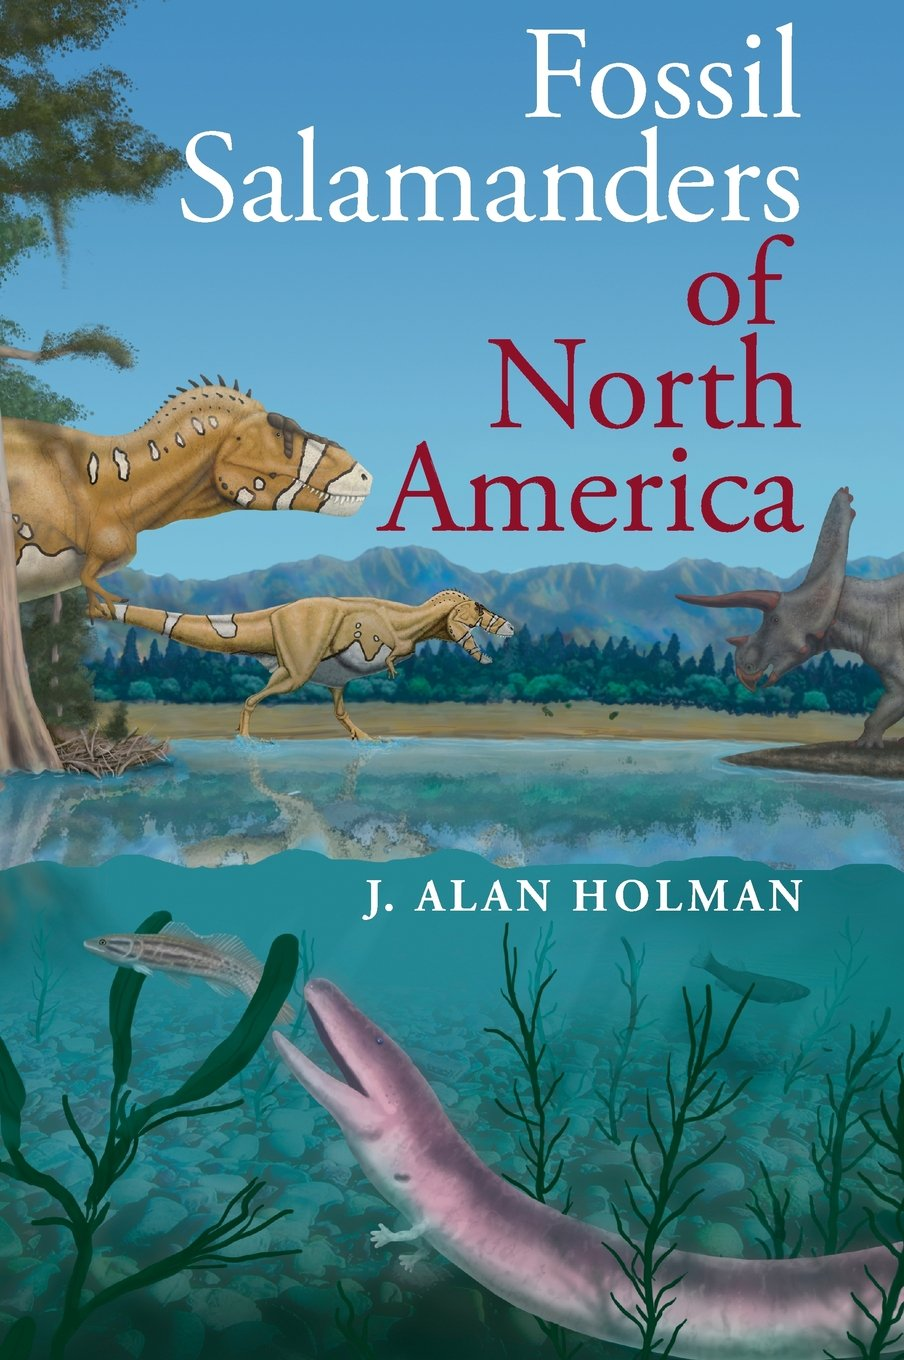 Fossil Salamanders of North America (Life of the Past)